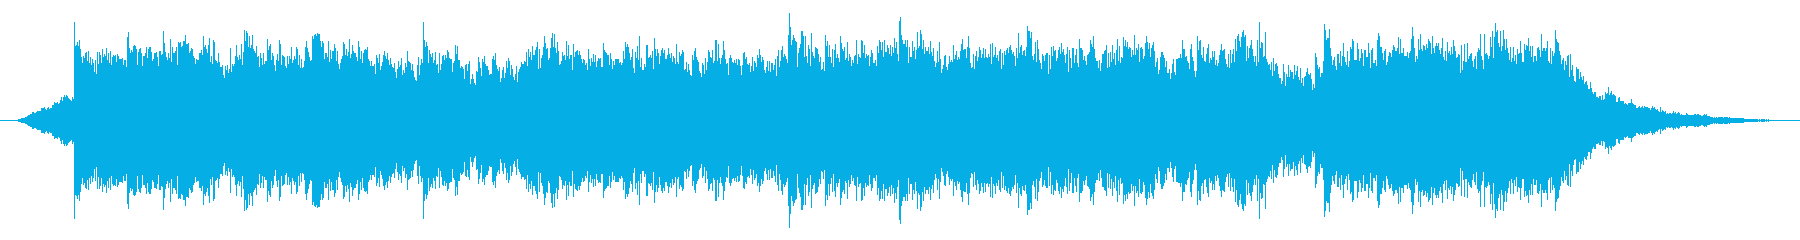 A song of a sad and suspicious scene's reproduced waveform